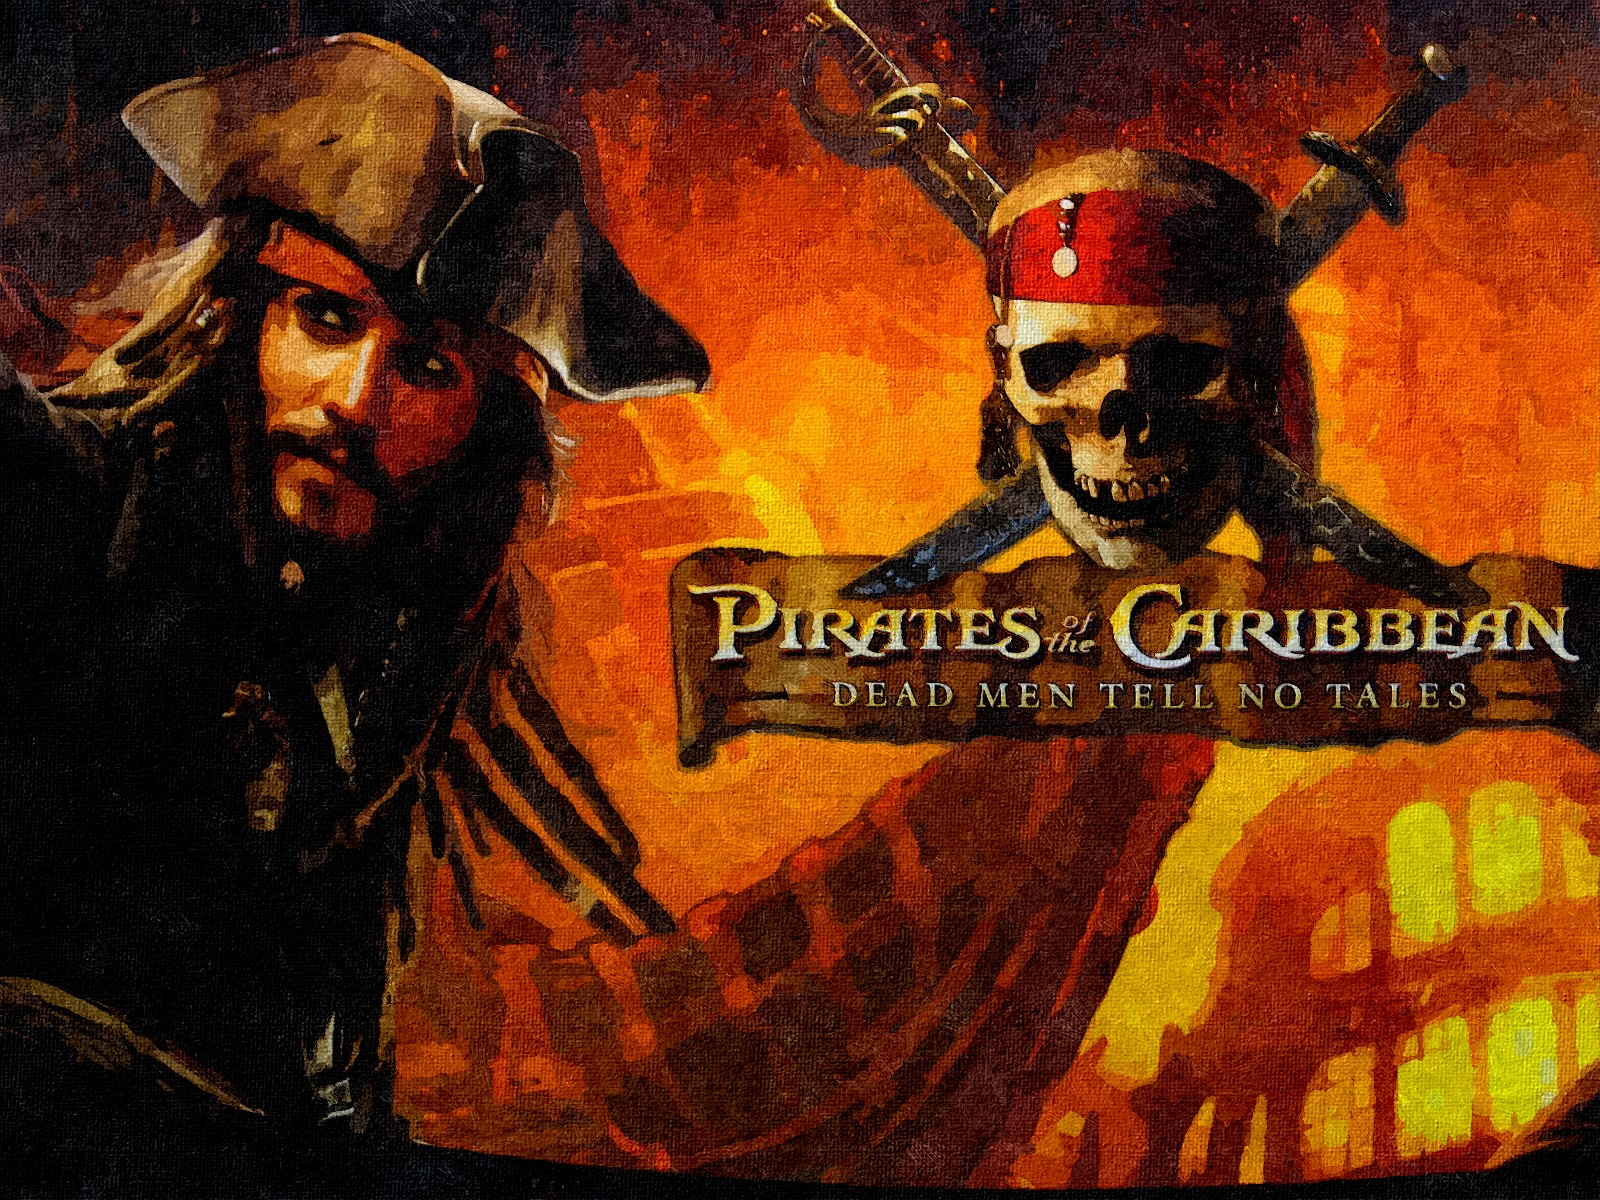 'Pirates of the Caribbean 5' Release Date Pushed Back to 2017